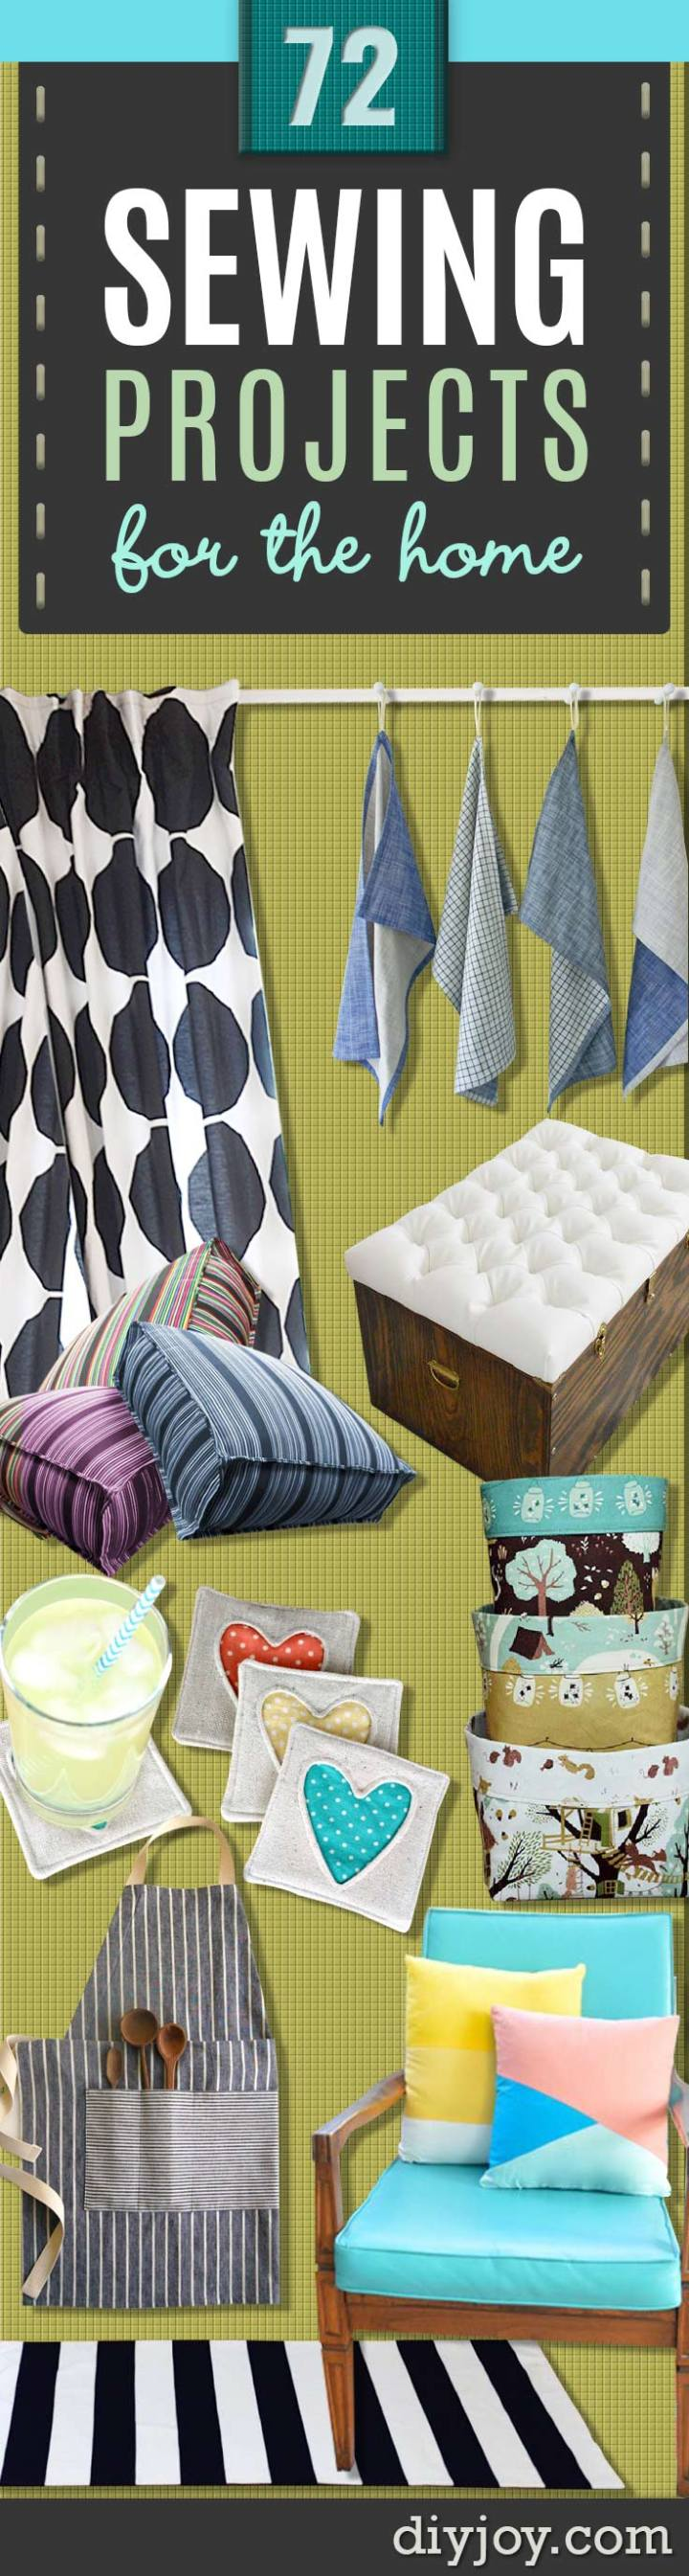 Home Decor Patterns For Sewing Decoratingspecial Com Home Decorators Catalog Best Ideas of Home Decor and Design [homedecoratorscatalog.us]